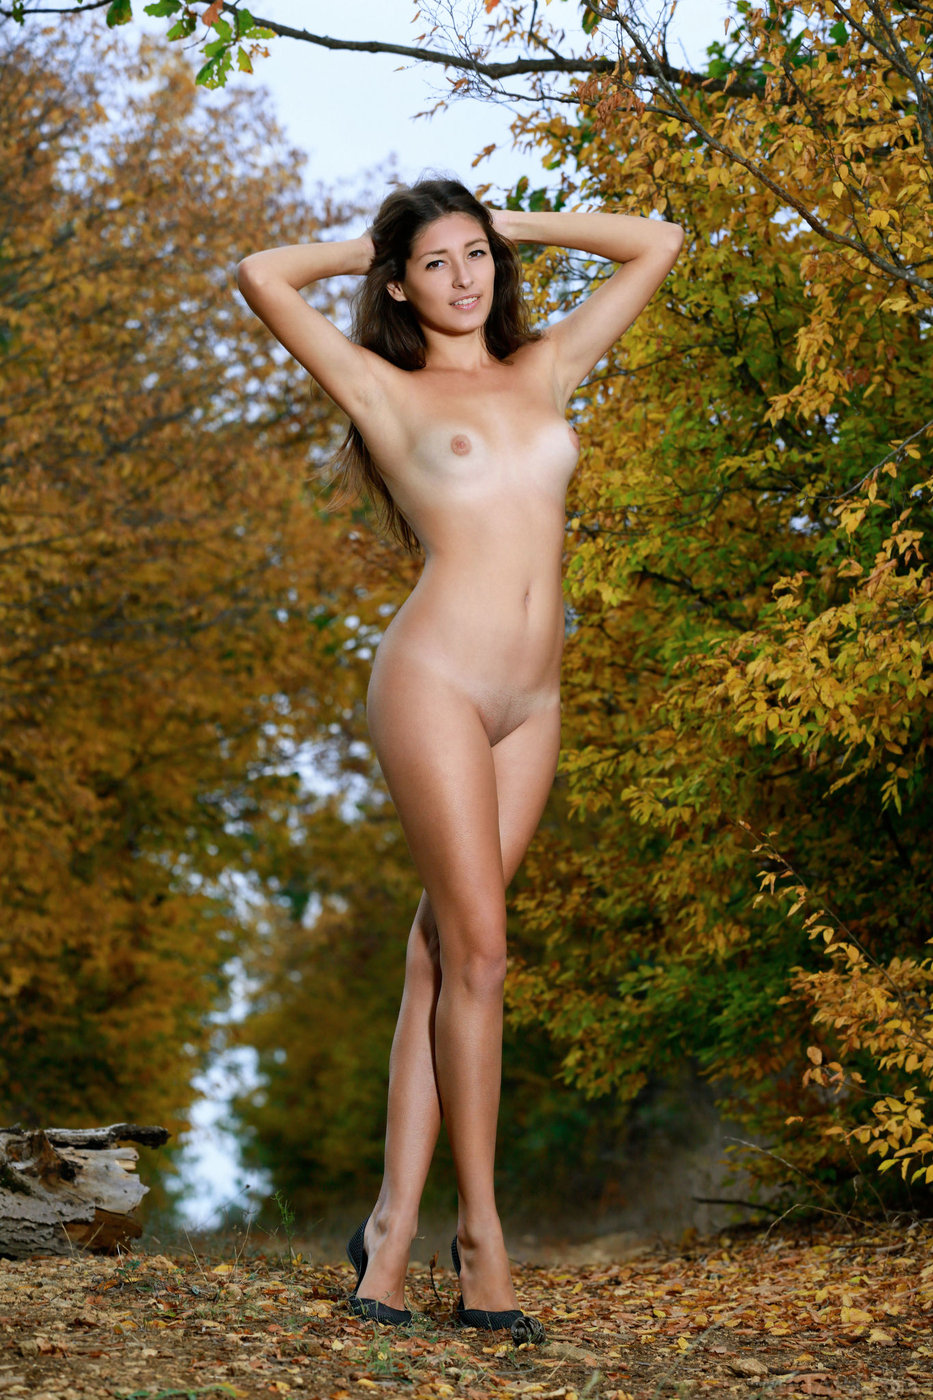 Congratulate, Dark haired naked women outdoors matchless